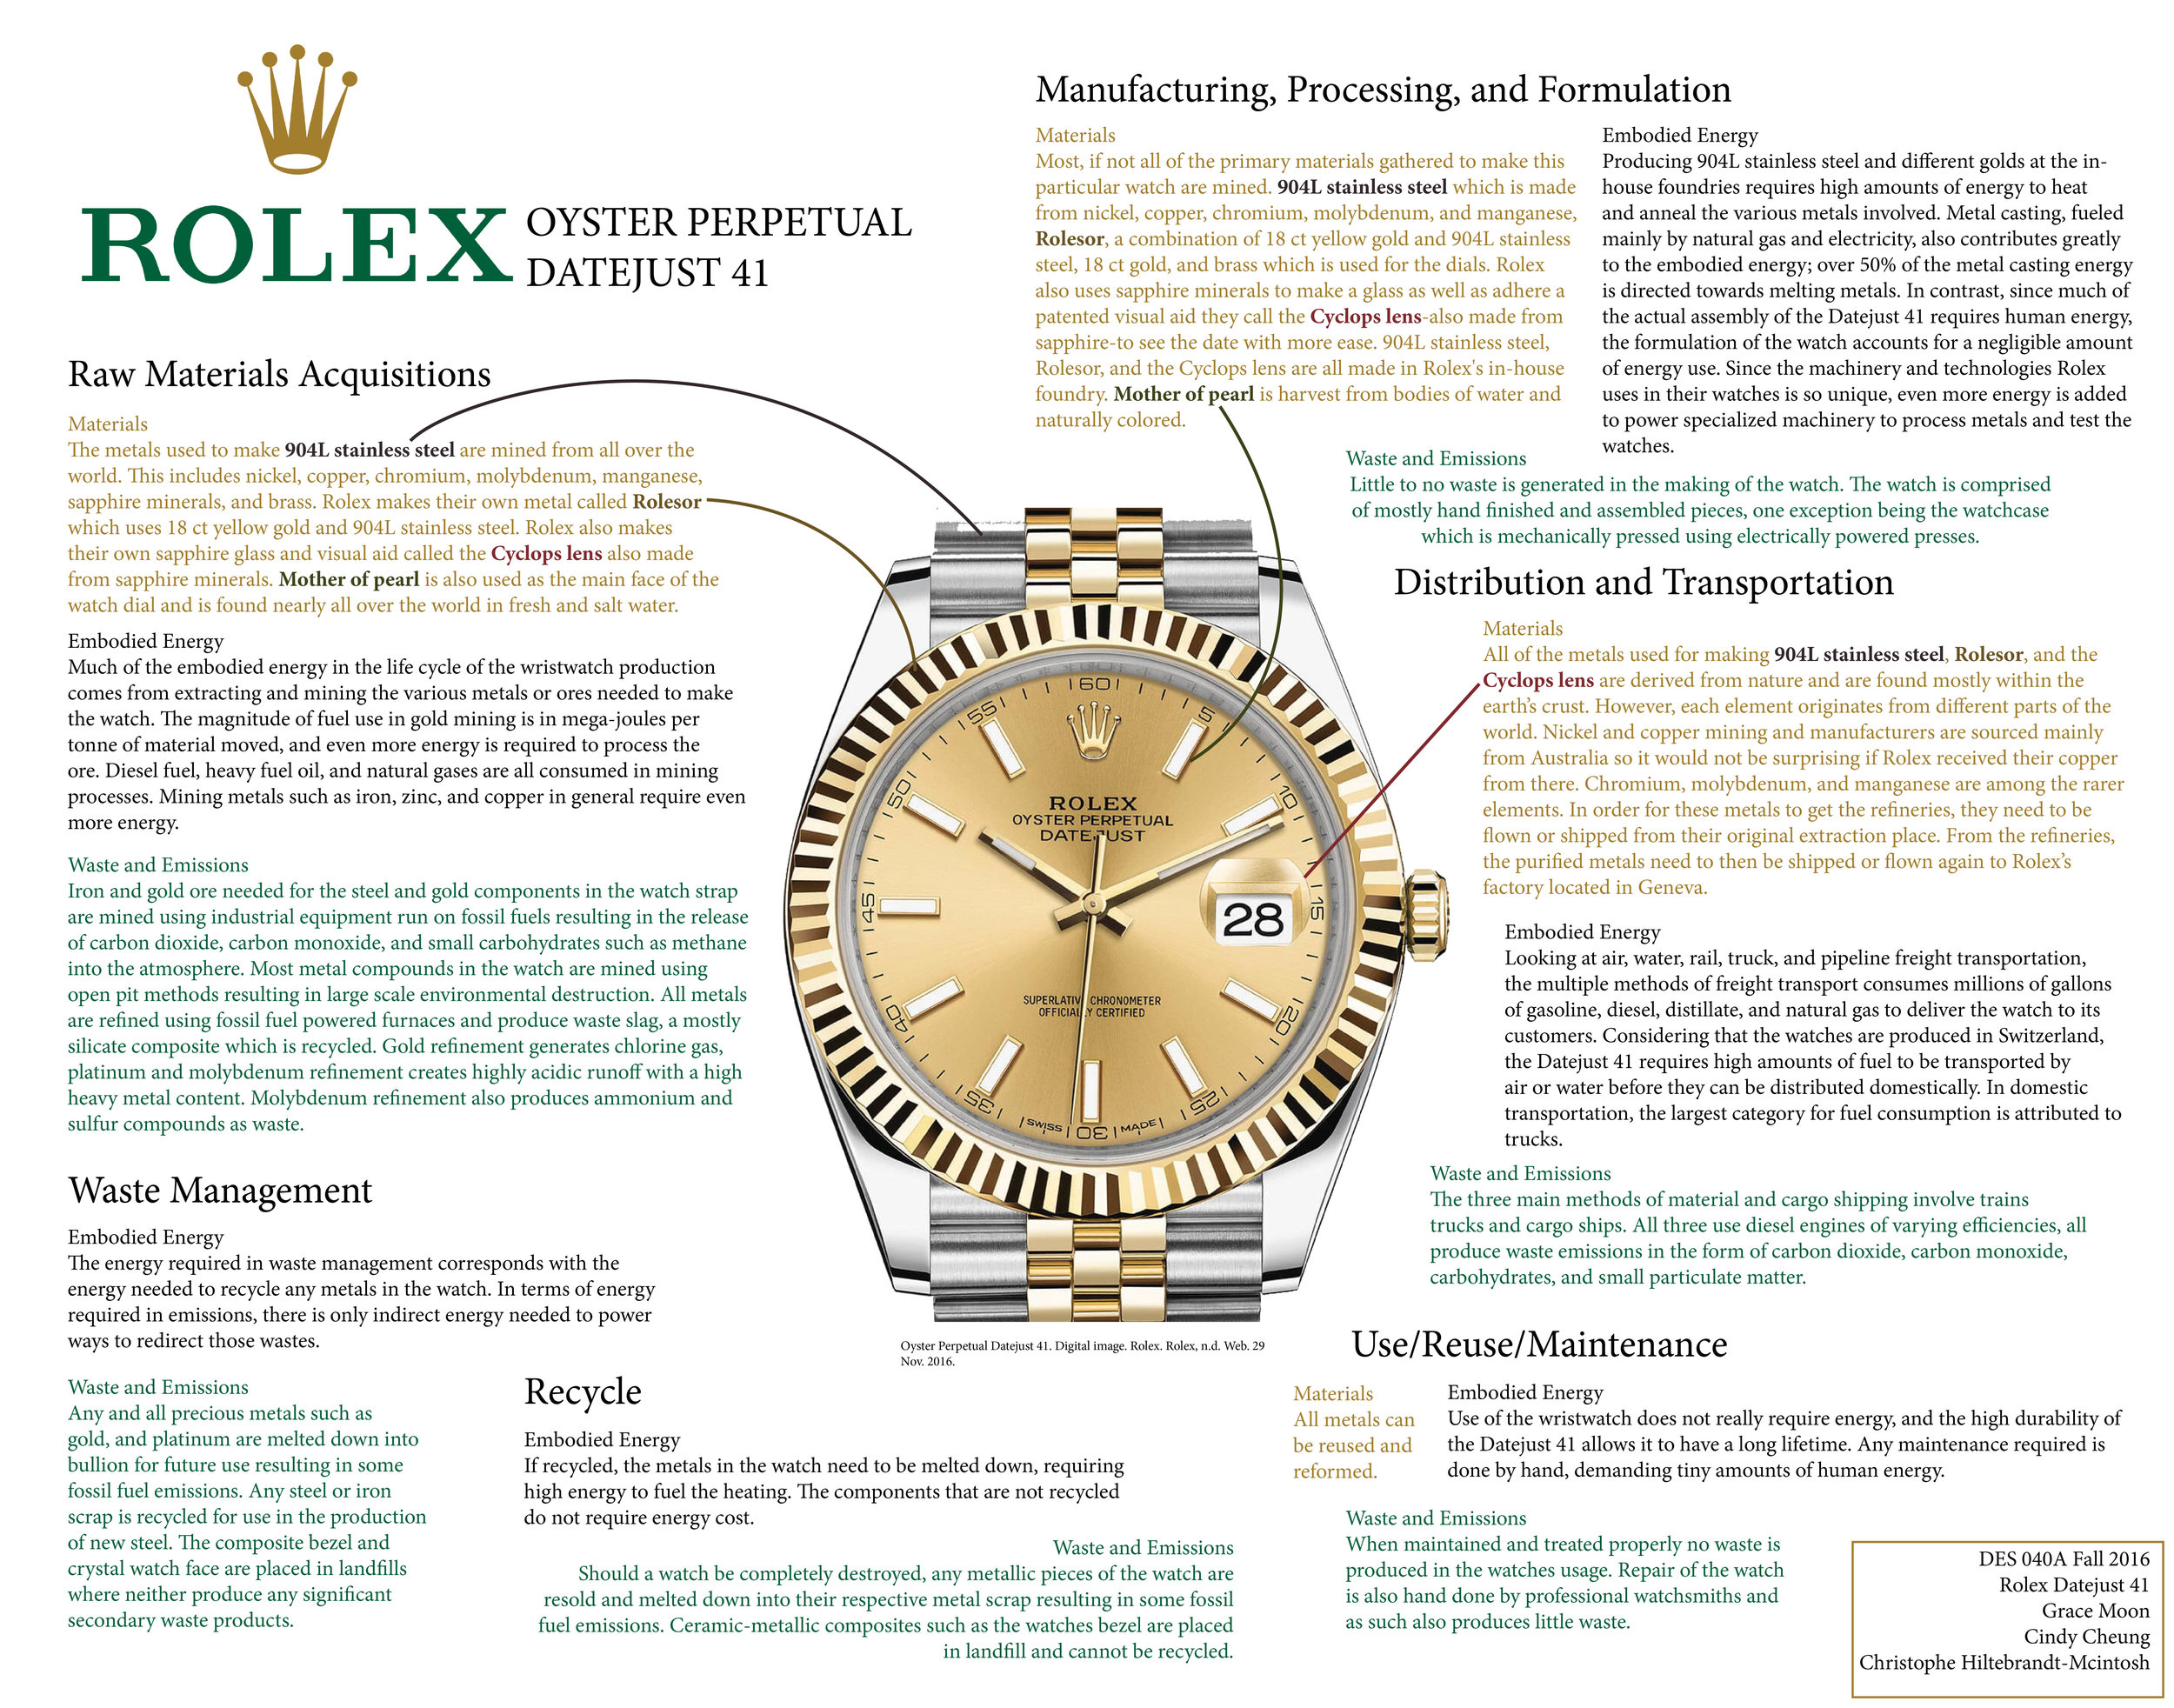 Rolex Datejust 41 Life Cycle Poster.jpg